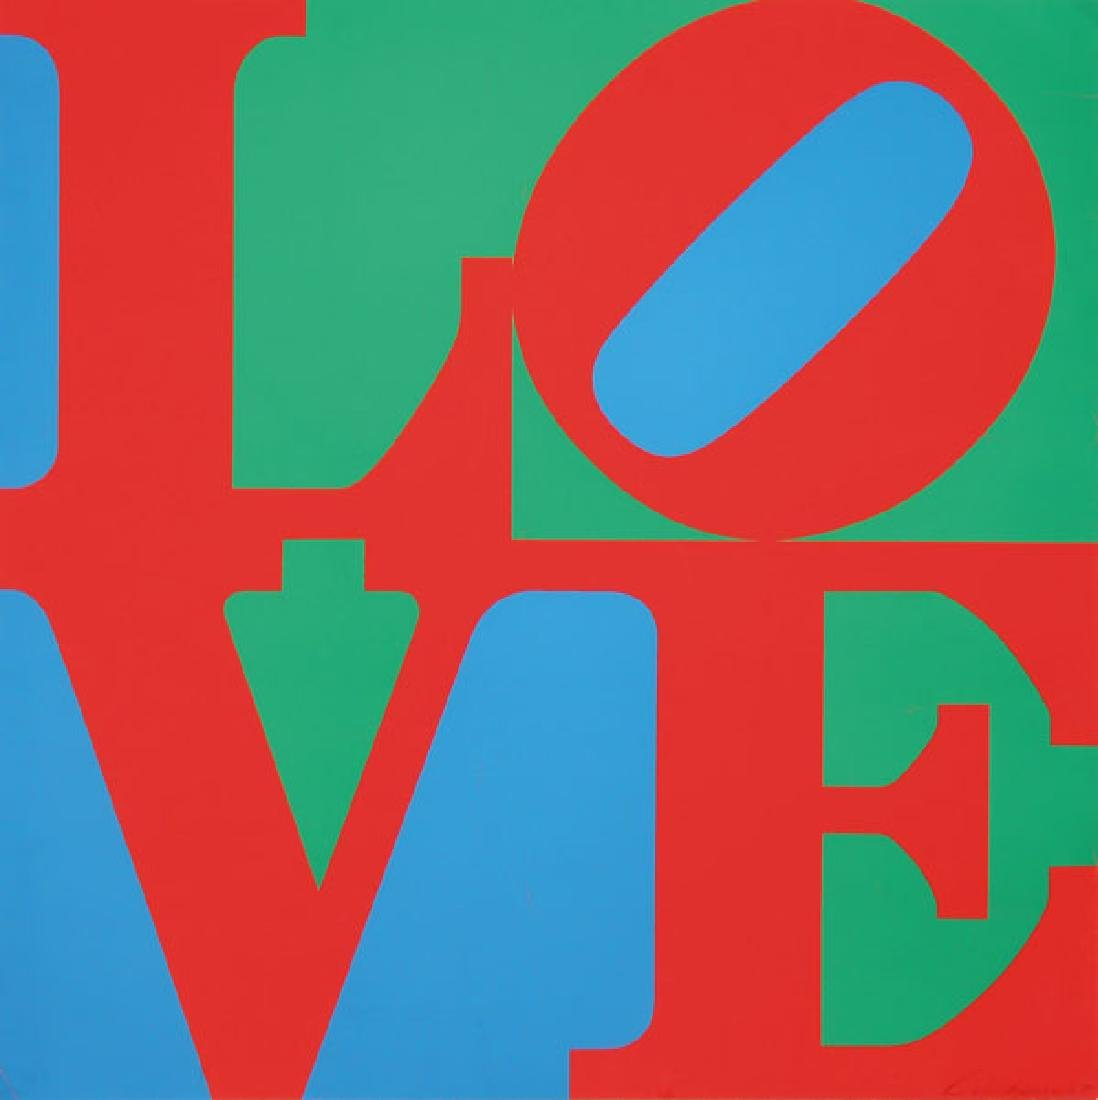 ORIGINAL ROBERT INDIANA SIGNED SILKSCREEN